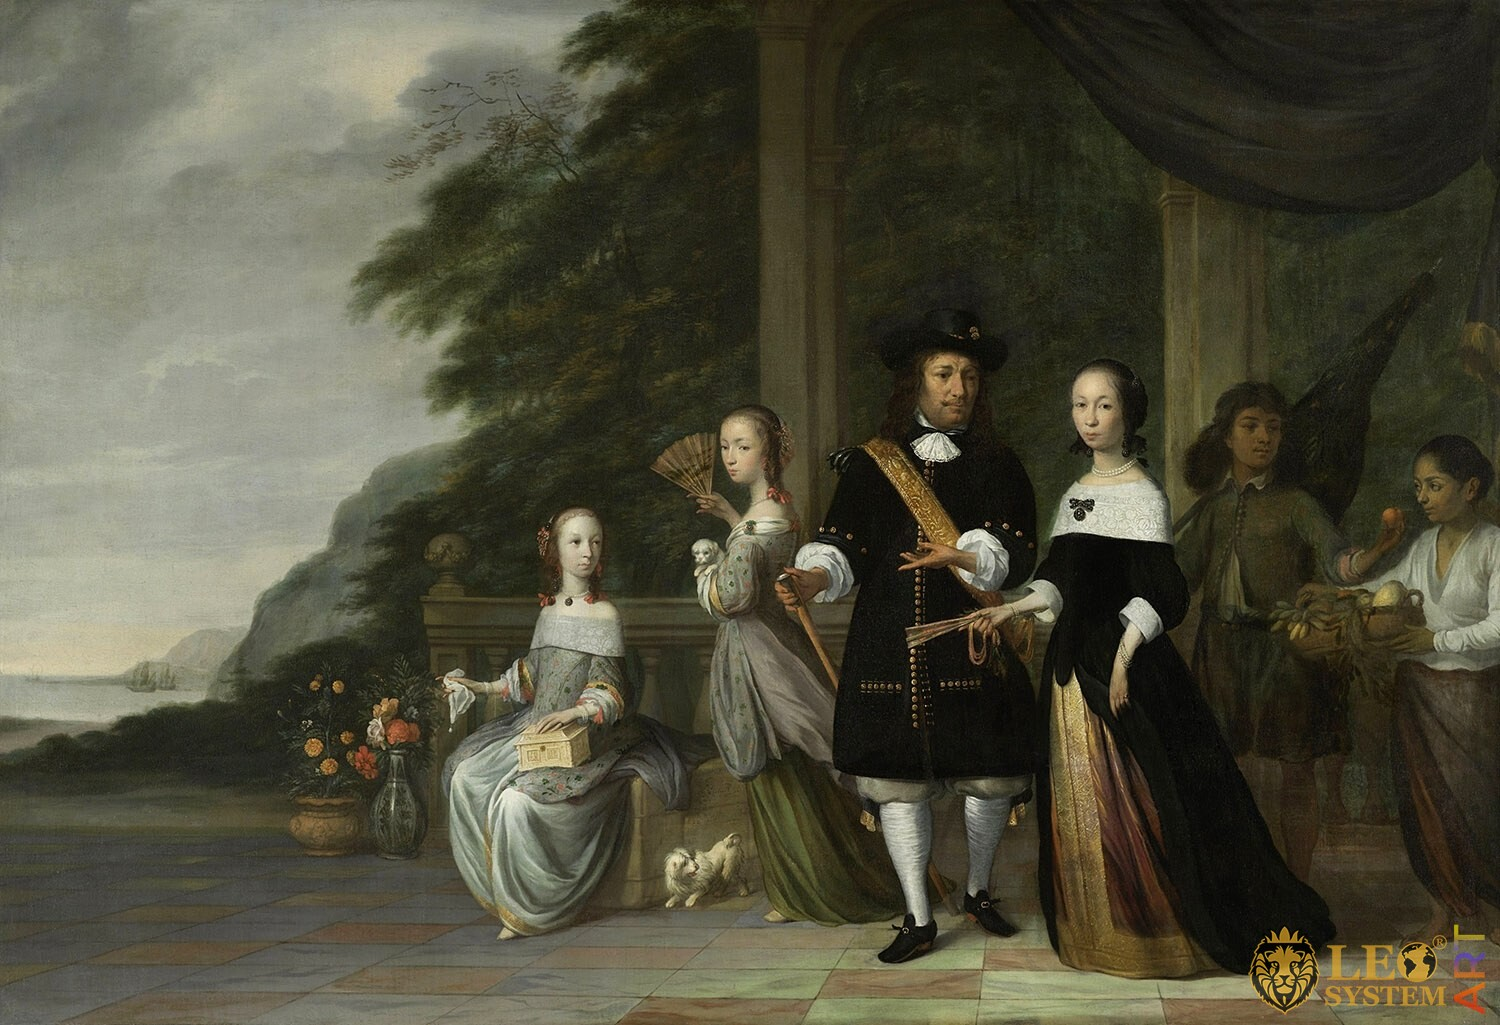 Pieter Cnoll, Cornelia van Nijenrode and their Daughters, Artist: Jacob Jansz. Coeman, 1665, Amsterdam, Netherlands, Original painting